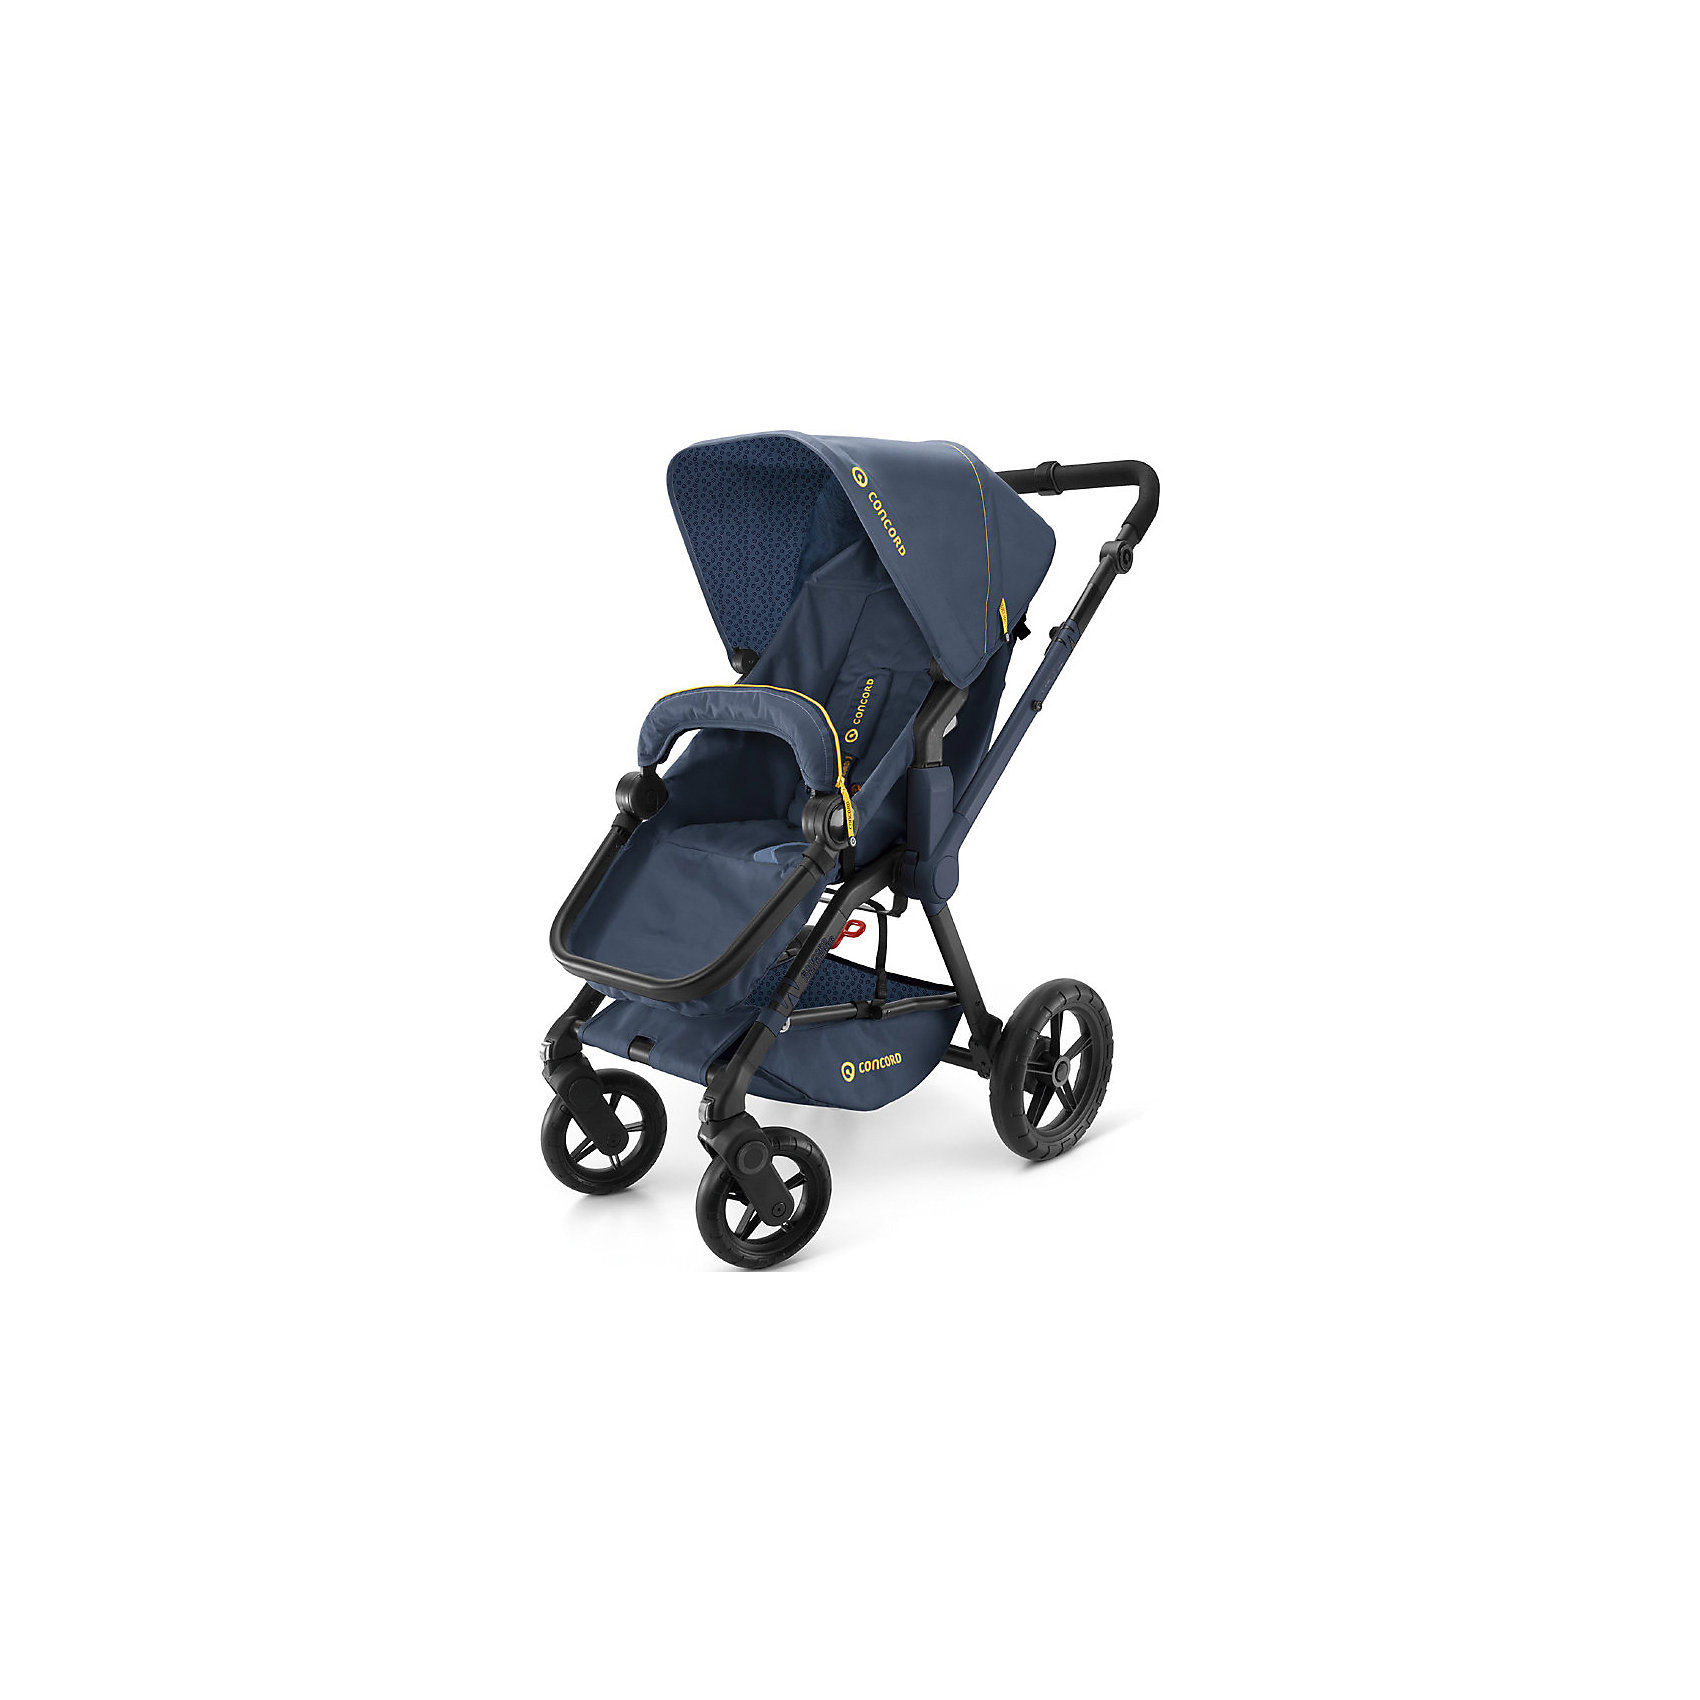 Concord Прогулочная коляска Wanderer, Concord, Denim Blue коляска concord concord коляска 3 в 1 neo travel set l e sweet curry 2016